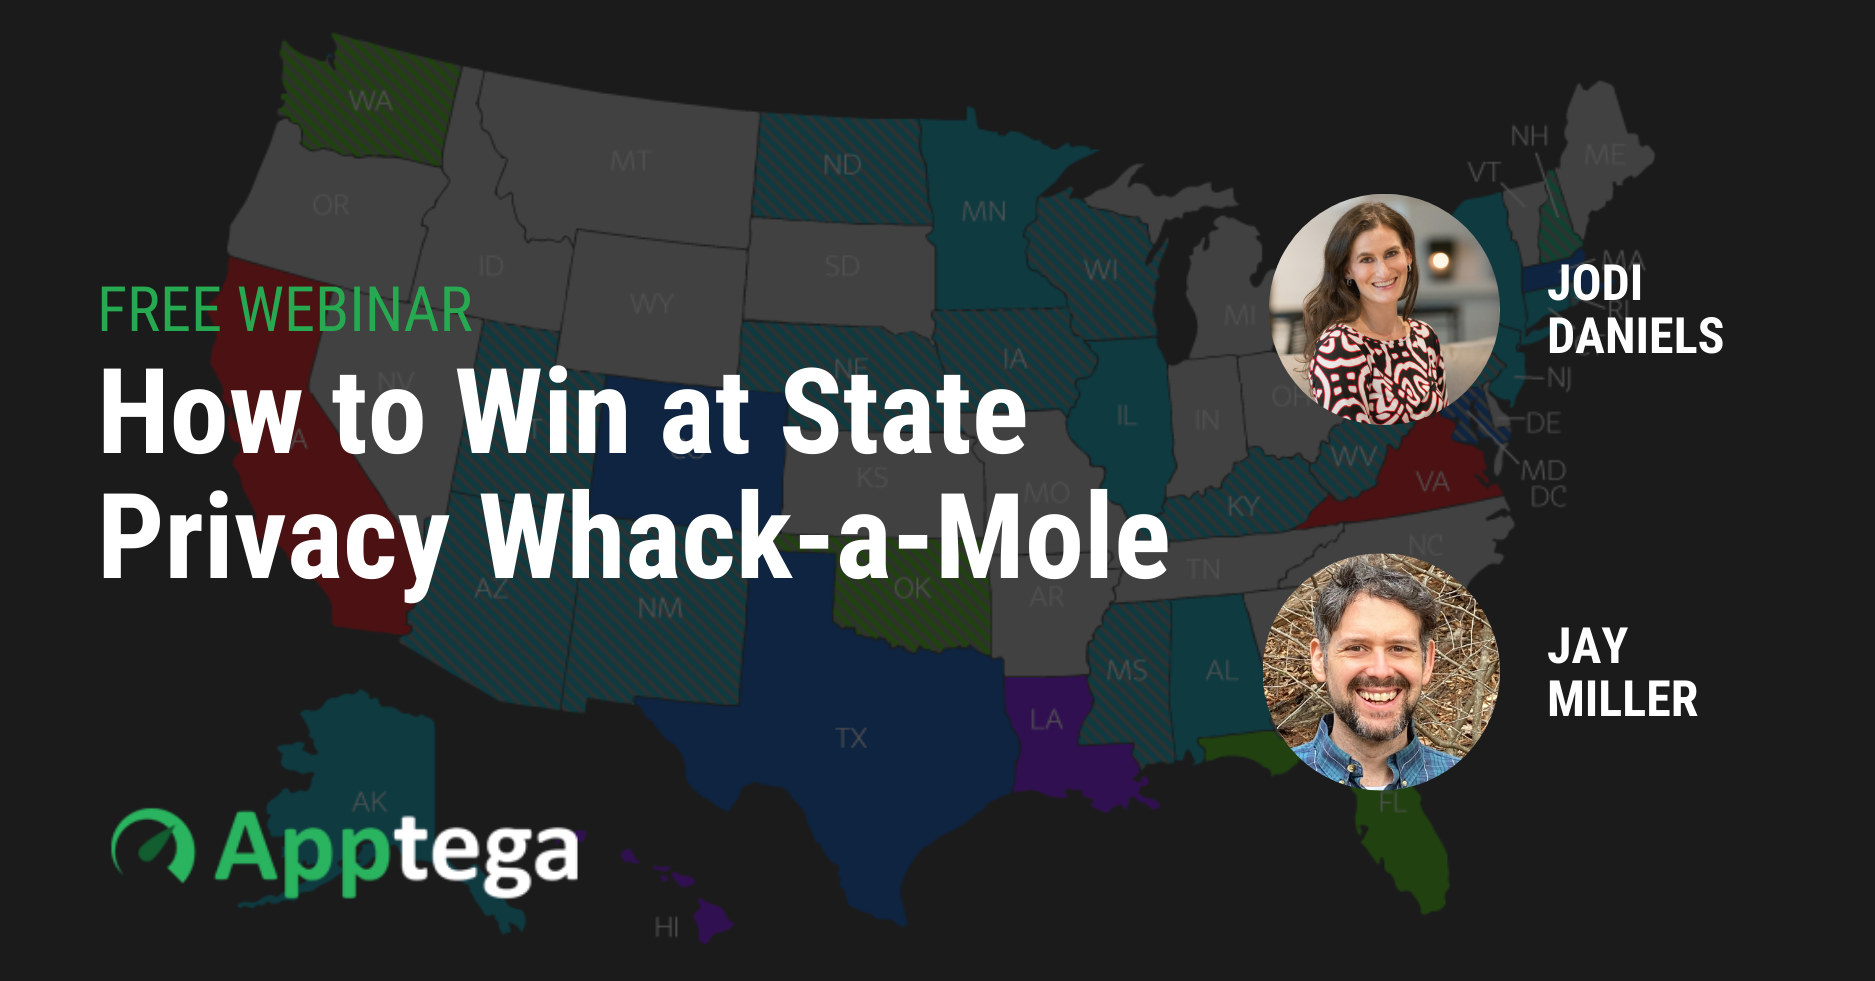 How to Win at State Privacy Whack-a-Mole Webinar Image